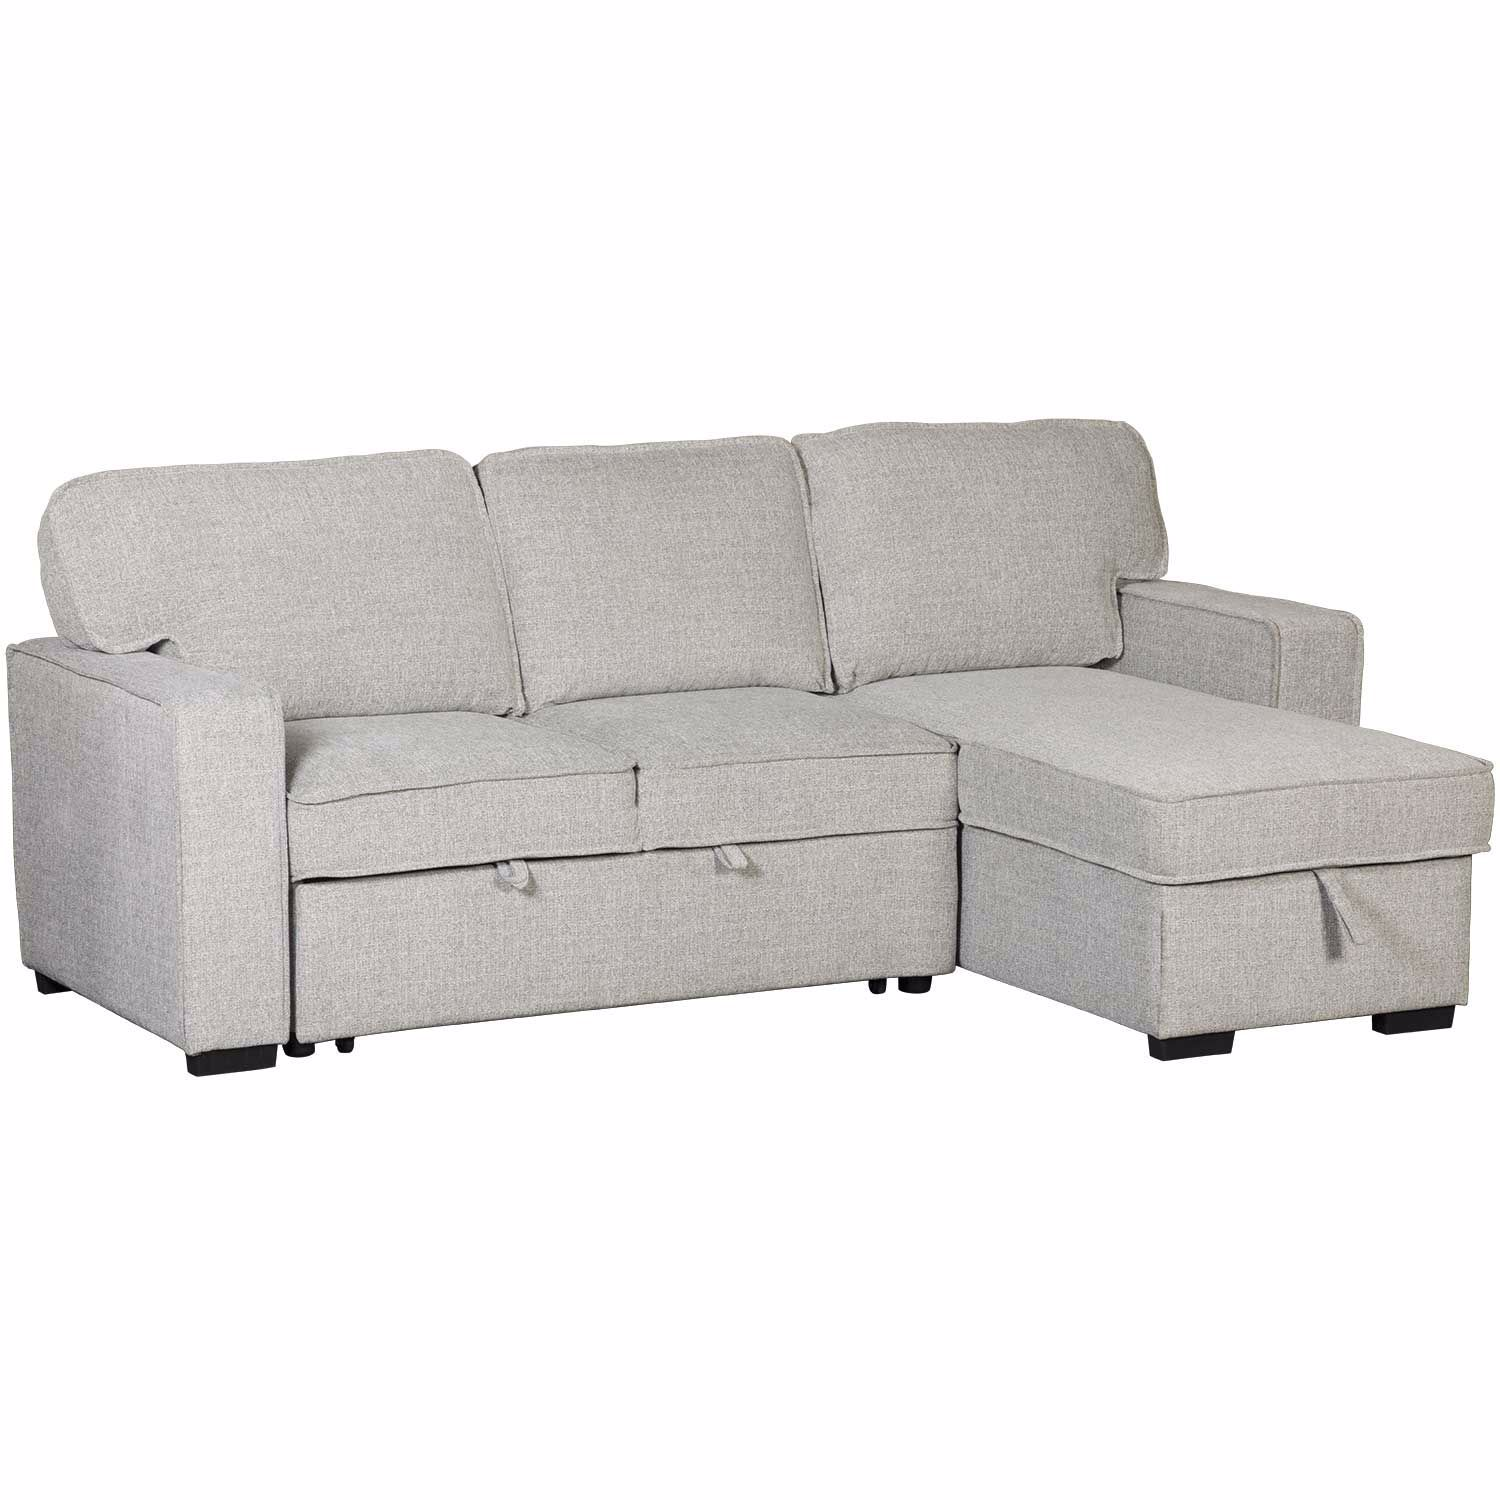 Kent Reversible Sofa Chaise With Storage